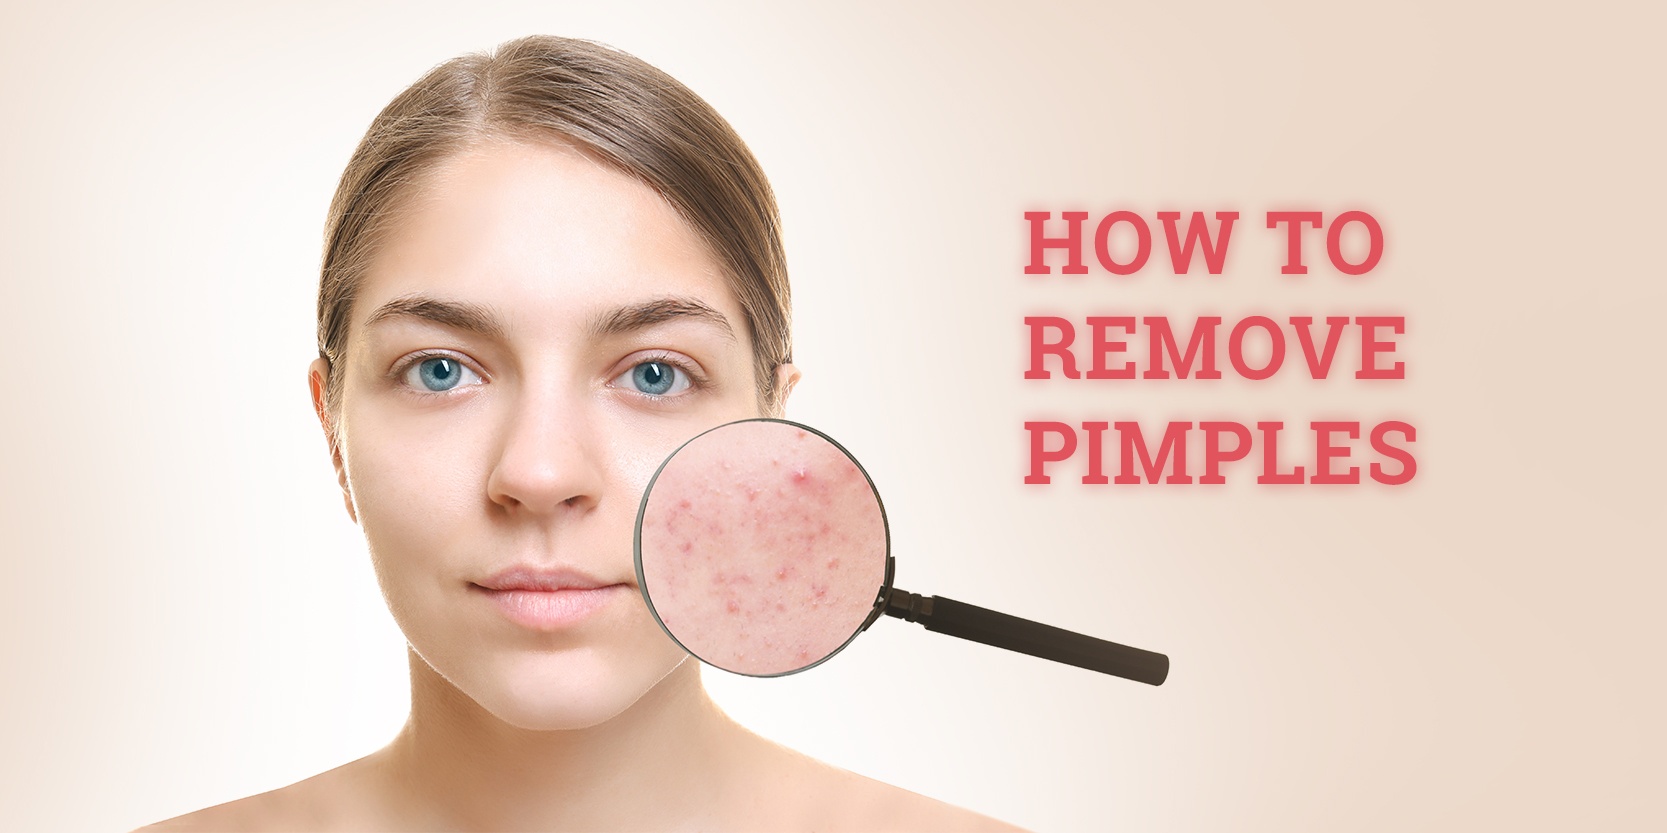 5 Tips by physicians on how to remove pimples and pimple marks